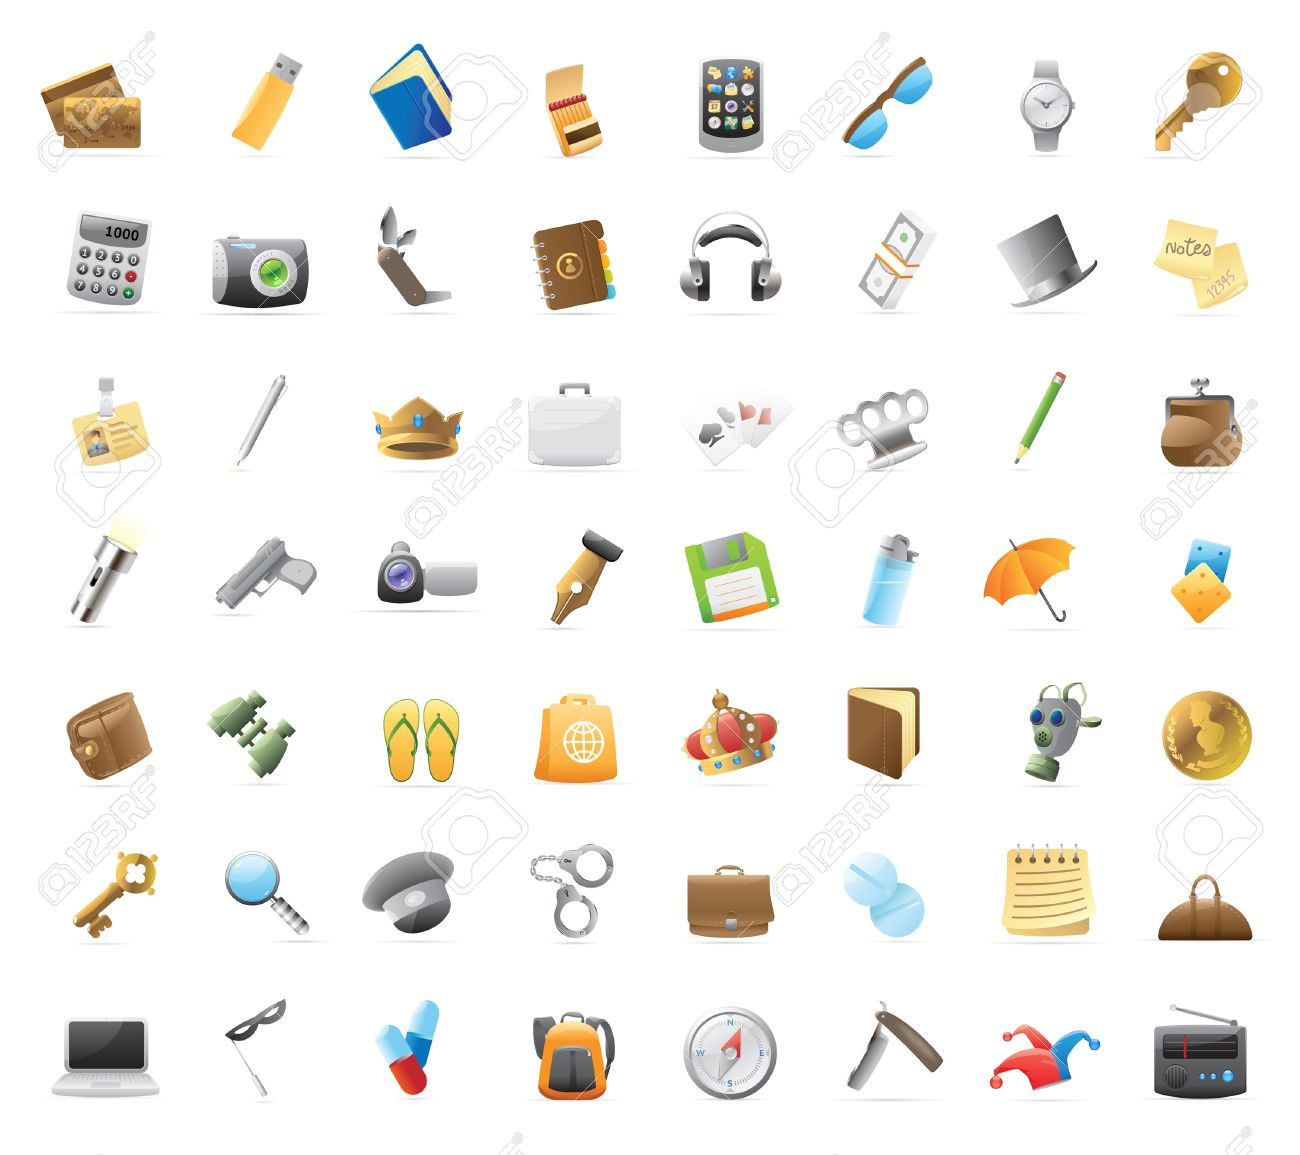 Personal belongings: 56 detailed icons for things you can carry. - 13094384